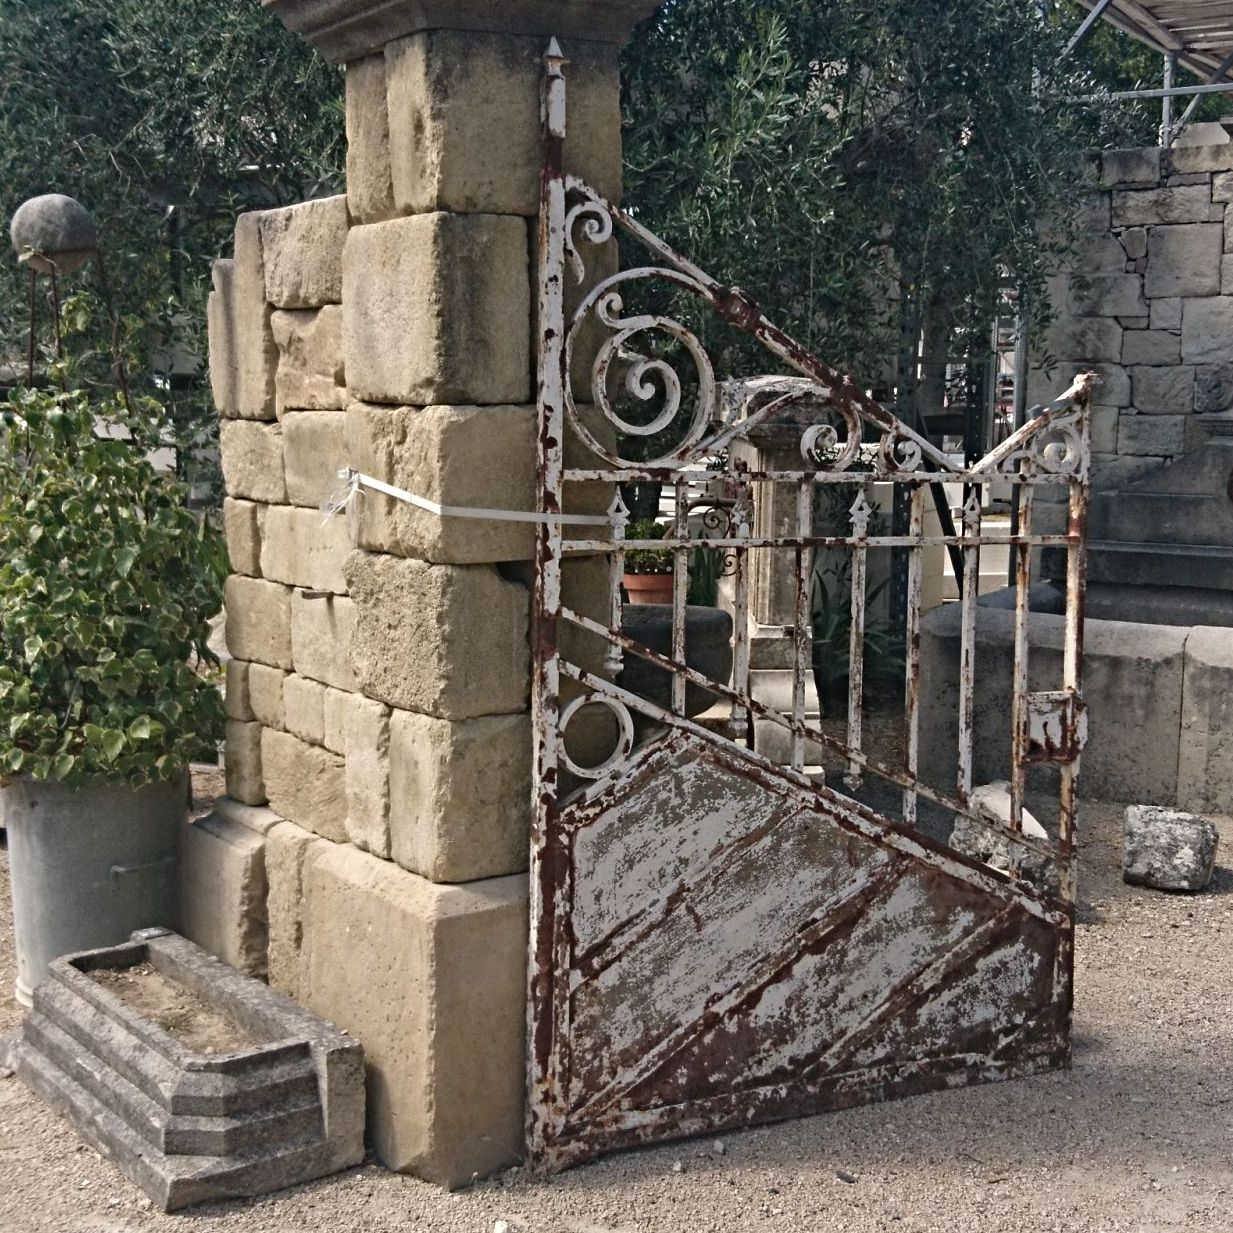 Wrought iron gate in a white color - Nice old house gate.